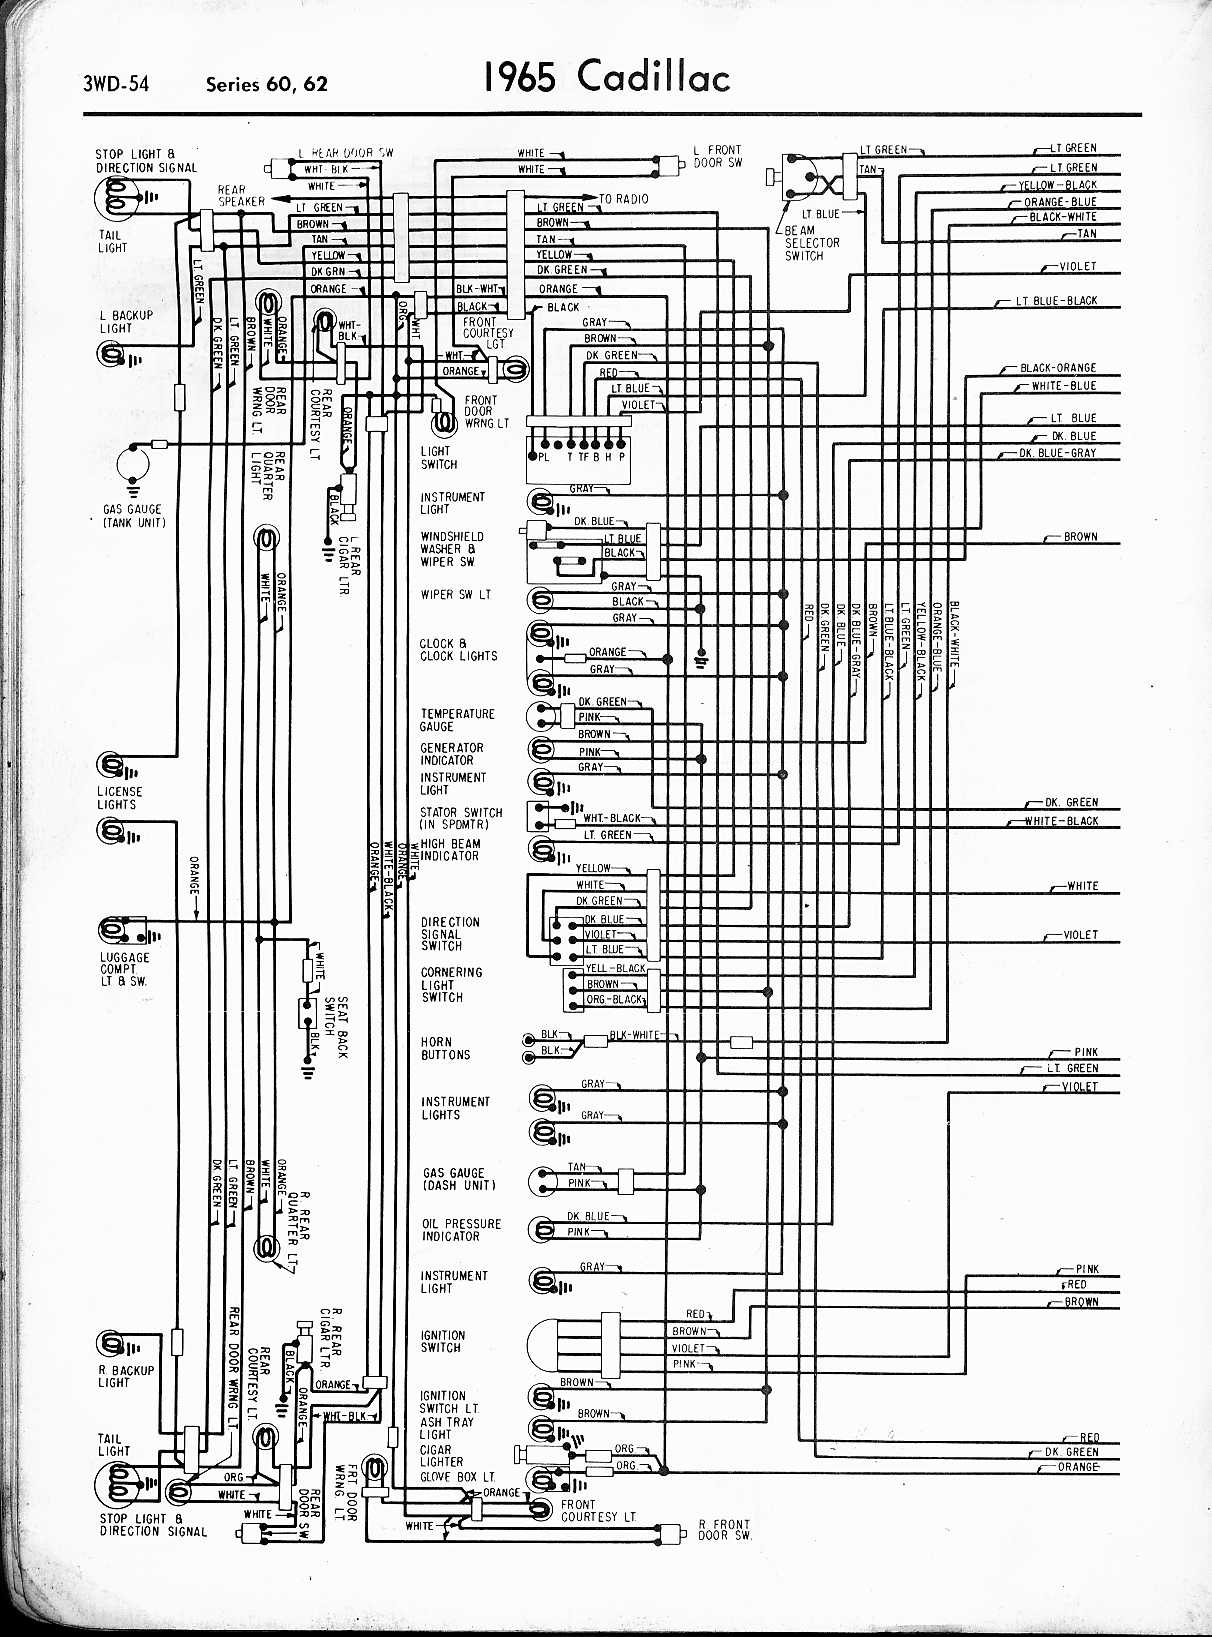 MWireCadi65_3WD 054 cadillac wiring diagrams 1957 1965 1955 plymouth wiring diagram at nearapp.co